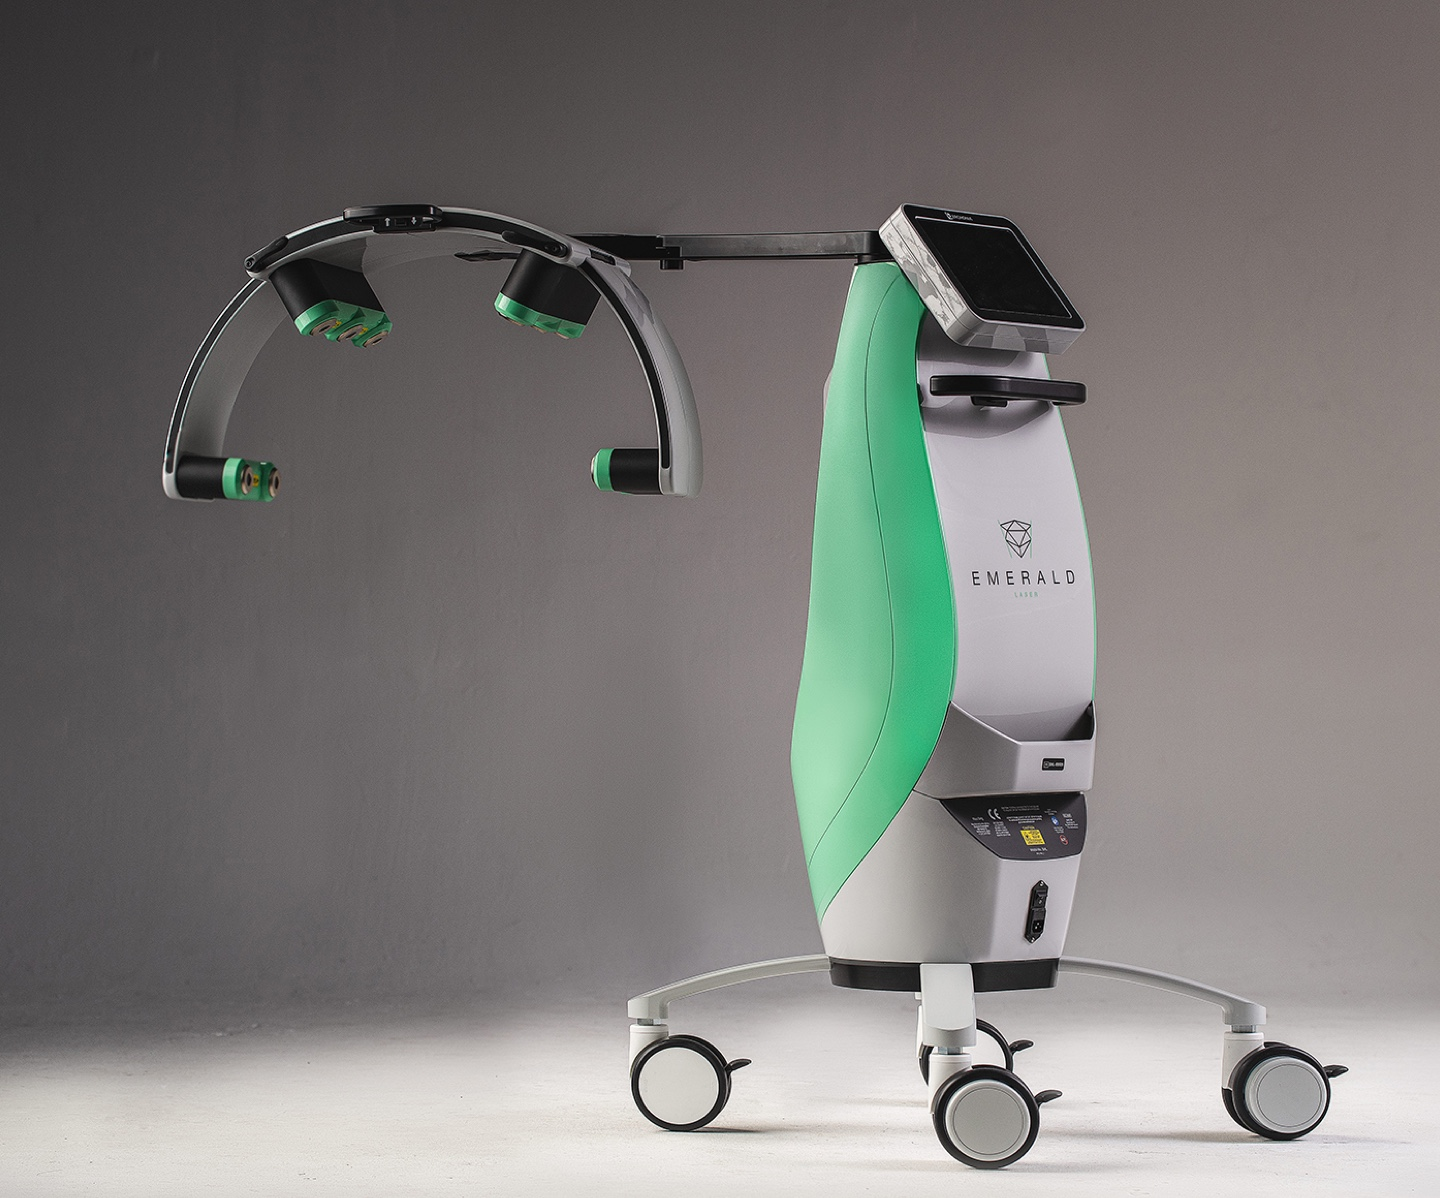 The Erchonia Emerald non-invasive fat loss laser